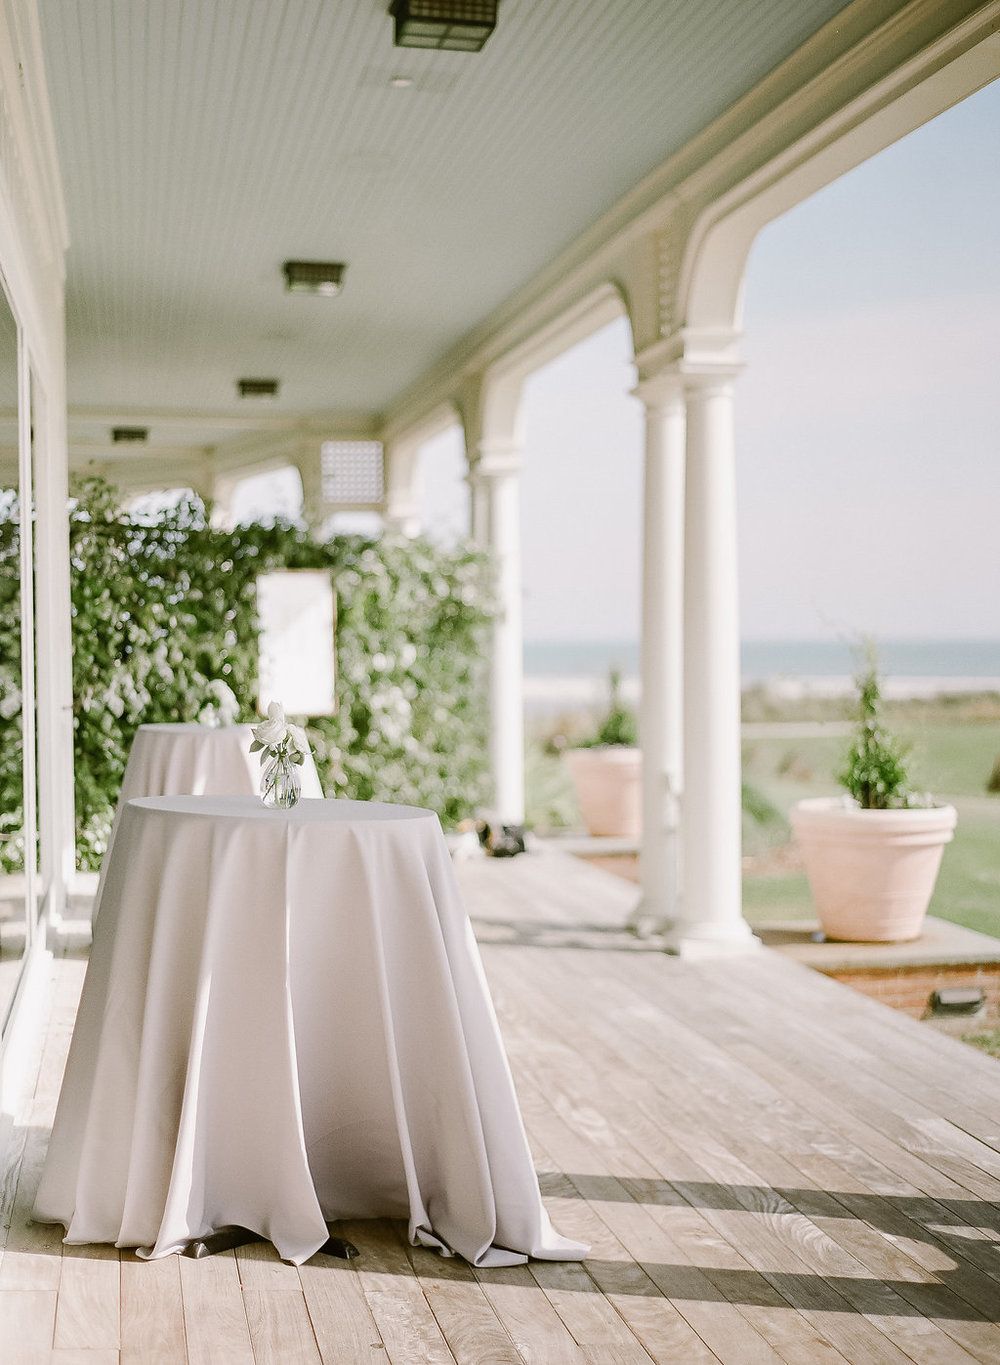 Wedding by the sea, Events by Reagan, Kiawah Wedding, Charleston Wedding Planner, Simple Table Decor